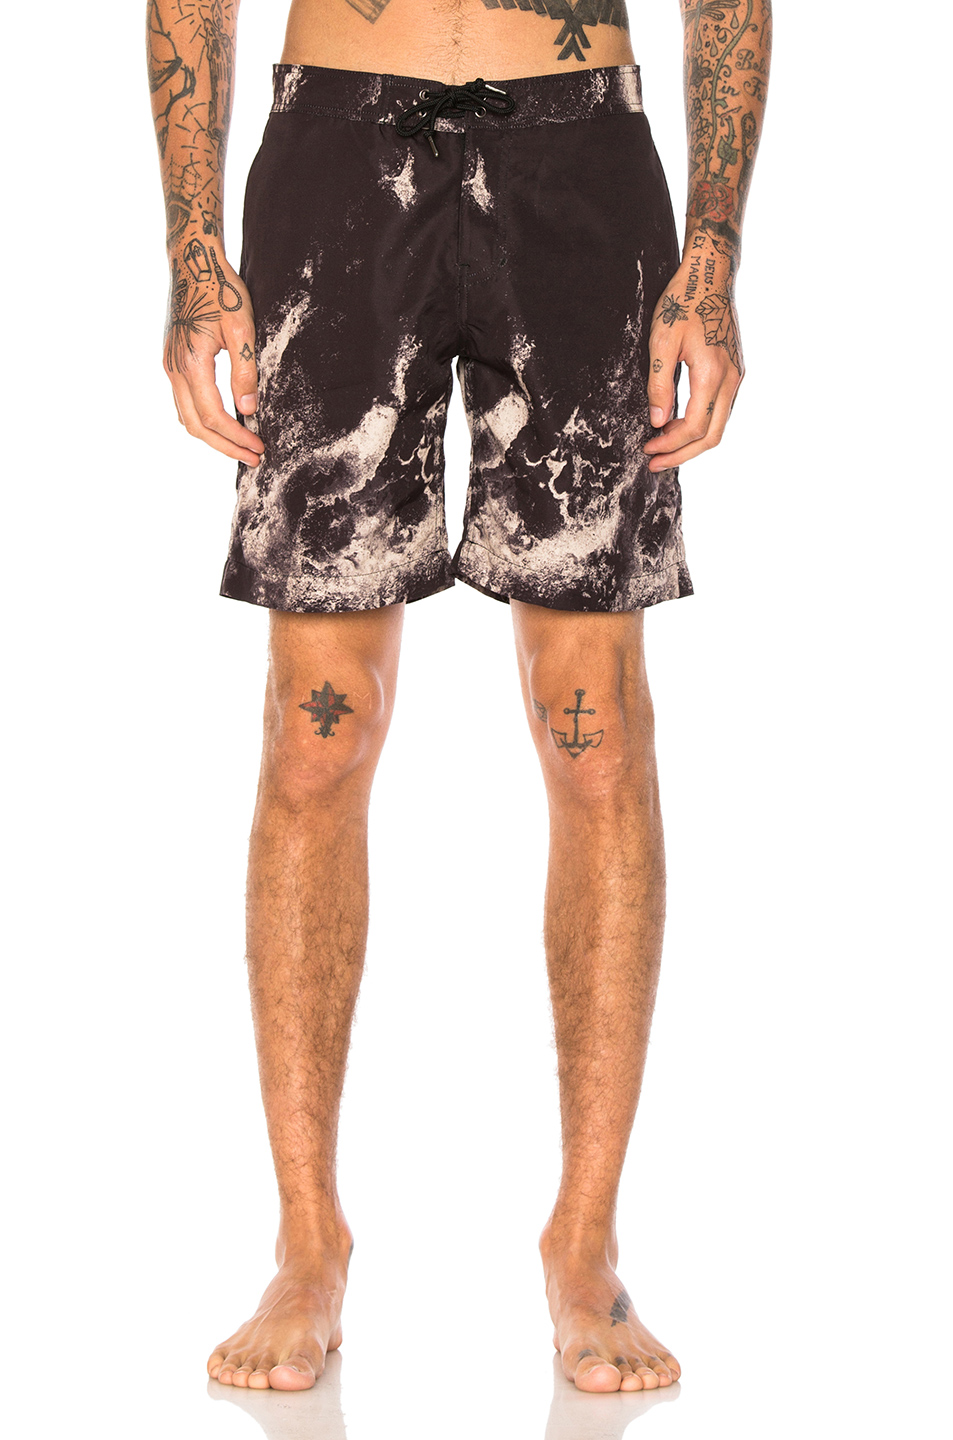 JOHN ELLIOTT Board Shorts in Abstract,Black,Neutrals